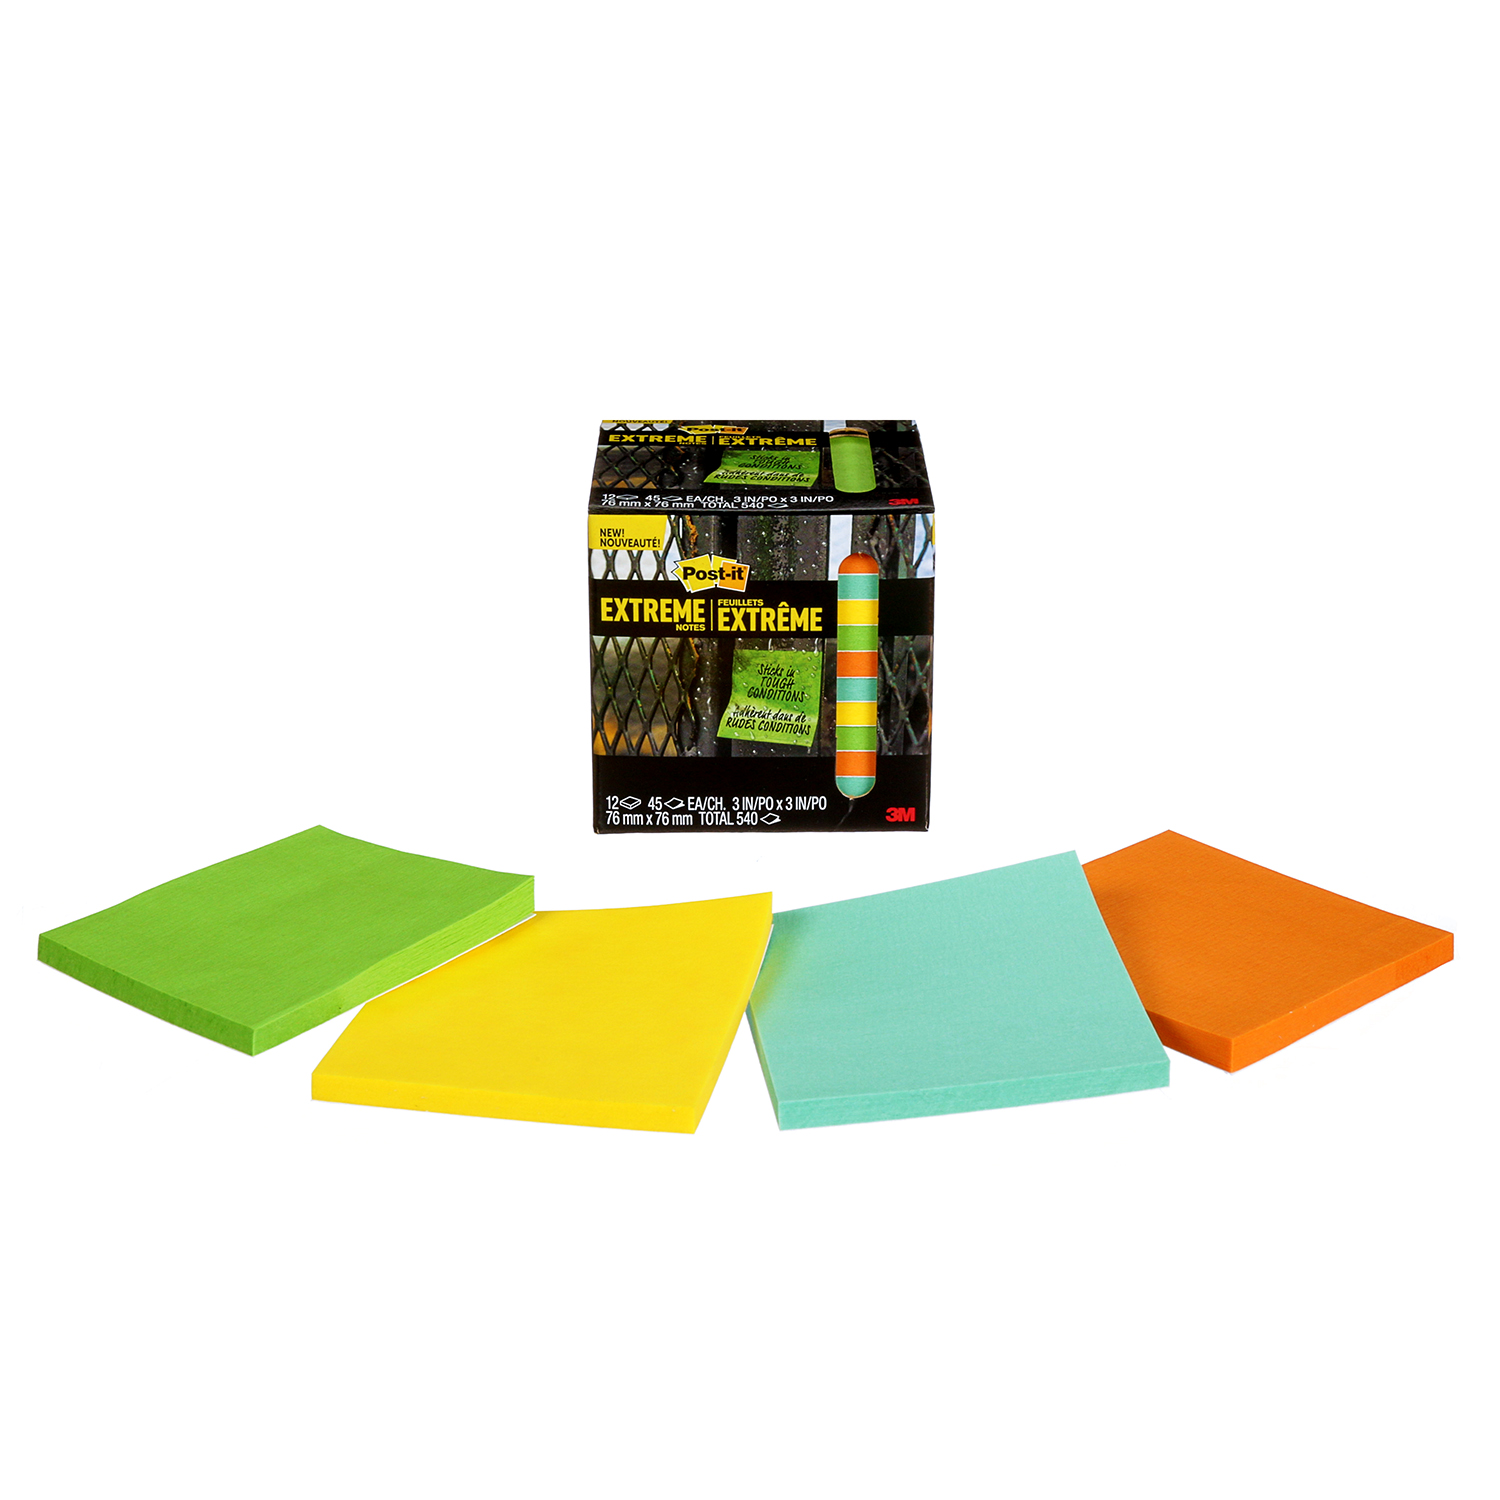 Post-it Extreme Notes Green Orange Yellow 3 Pads 76 mm x 76 mm